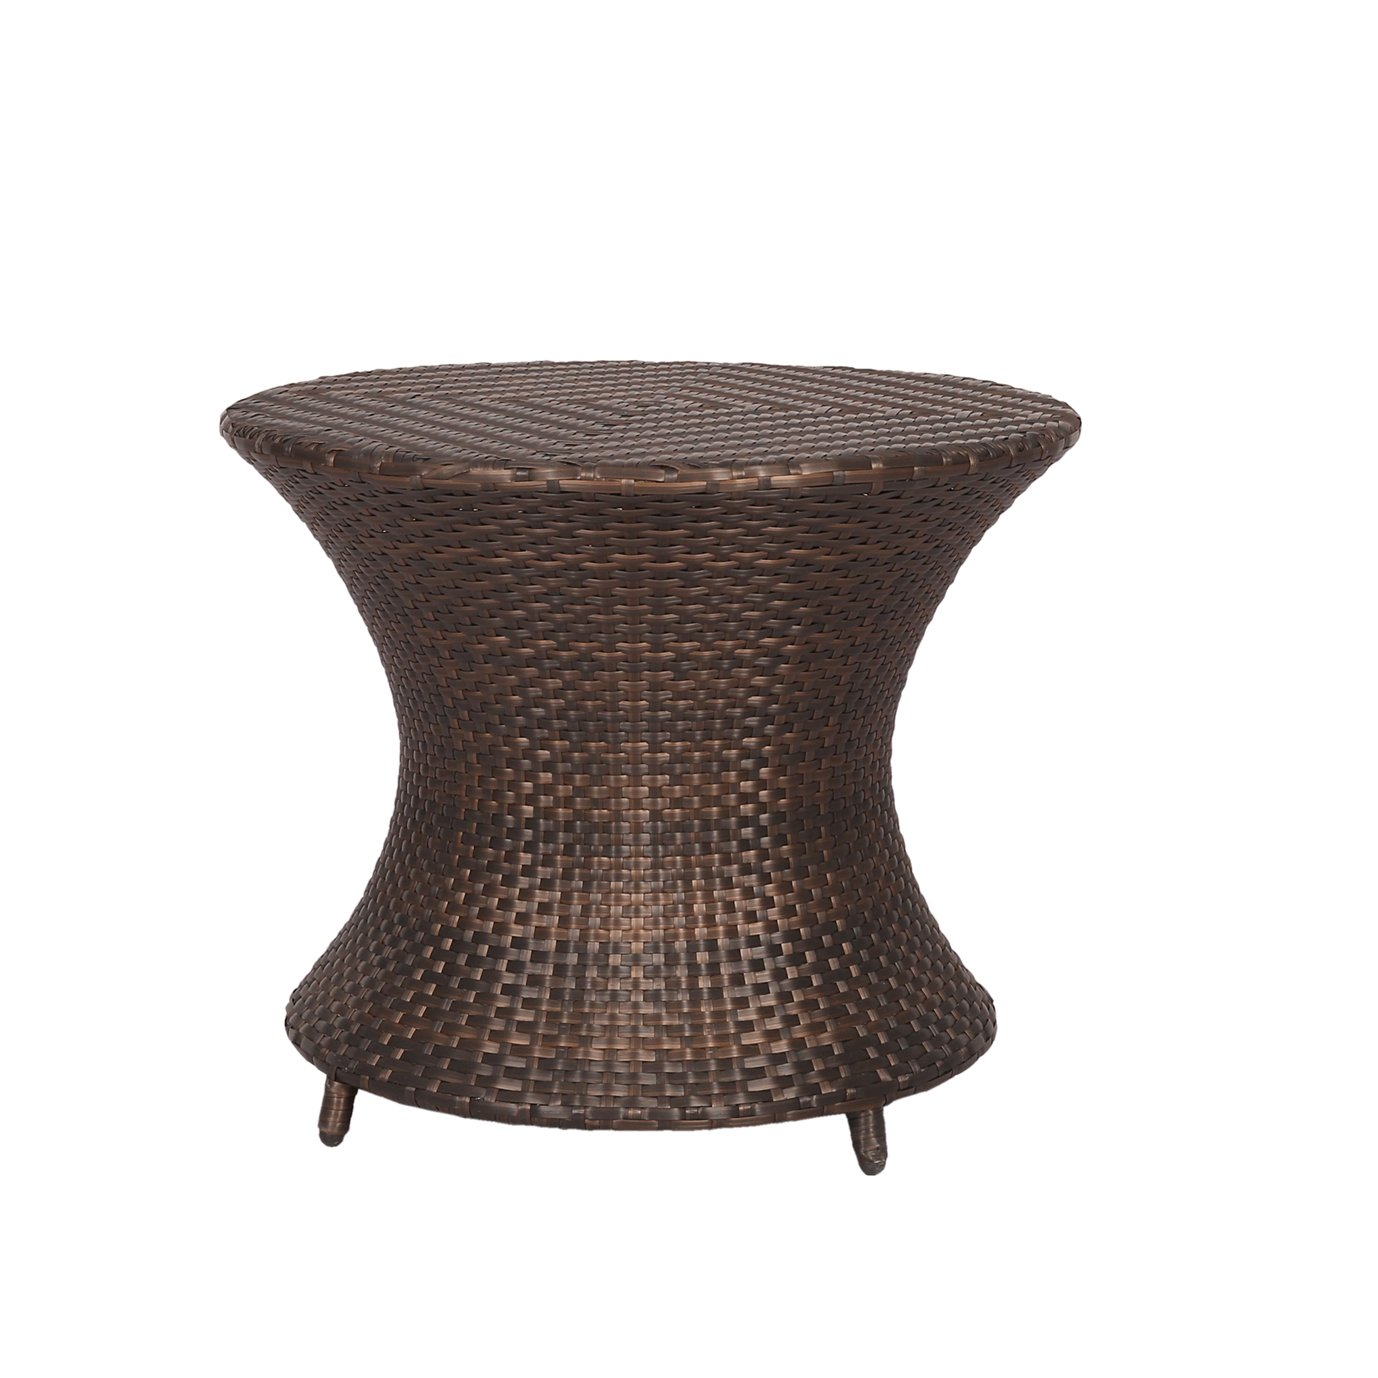 Ulax furniture All Weather Outdoor Patio Brown Wicker Accent Side Table Patio Furniture Garden Backyard Pool